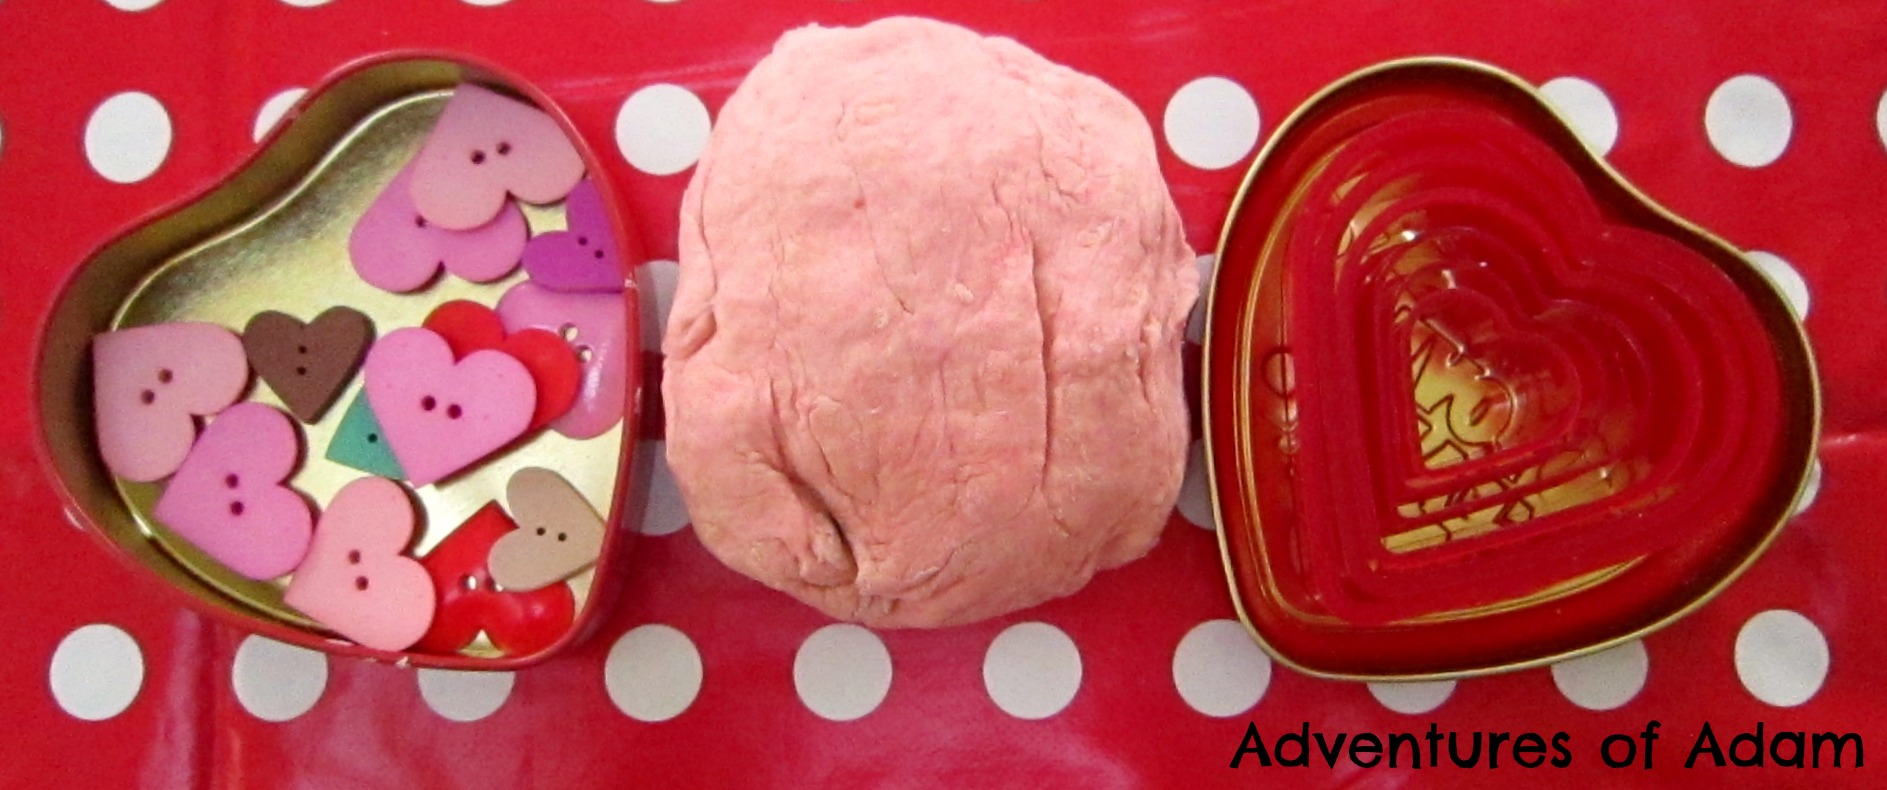 Adventures of Adam Valentine Play Dough